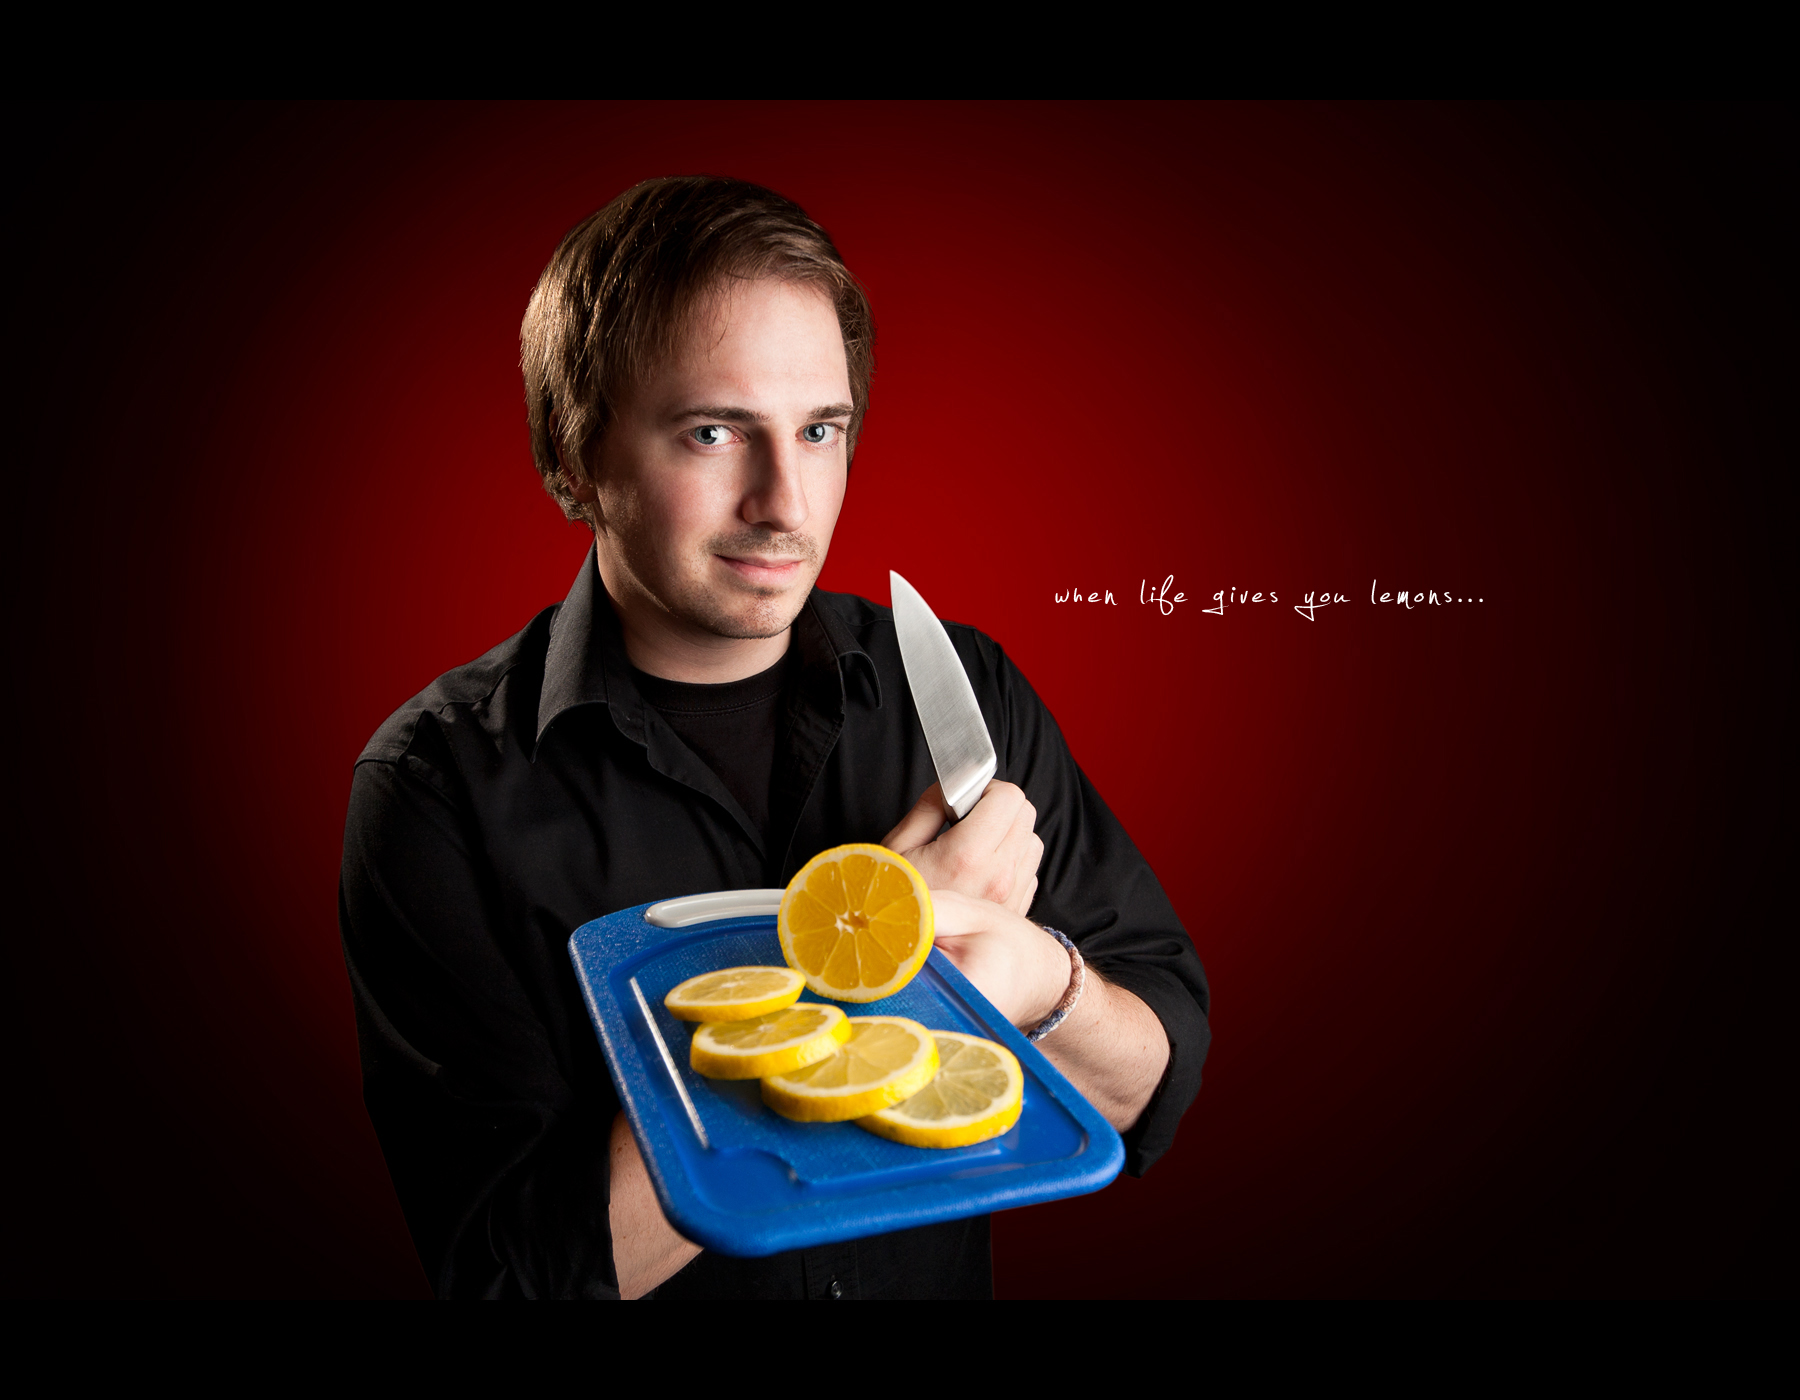 Project 365, Day 358, 358/365, Self Portrait, Strobist, lemons, knife, slice them, on black, westcott 28